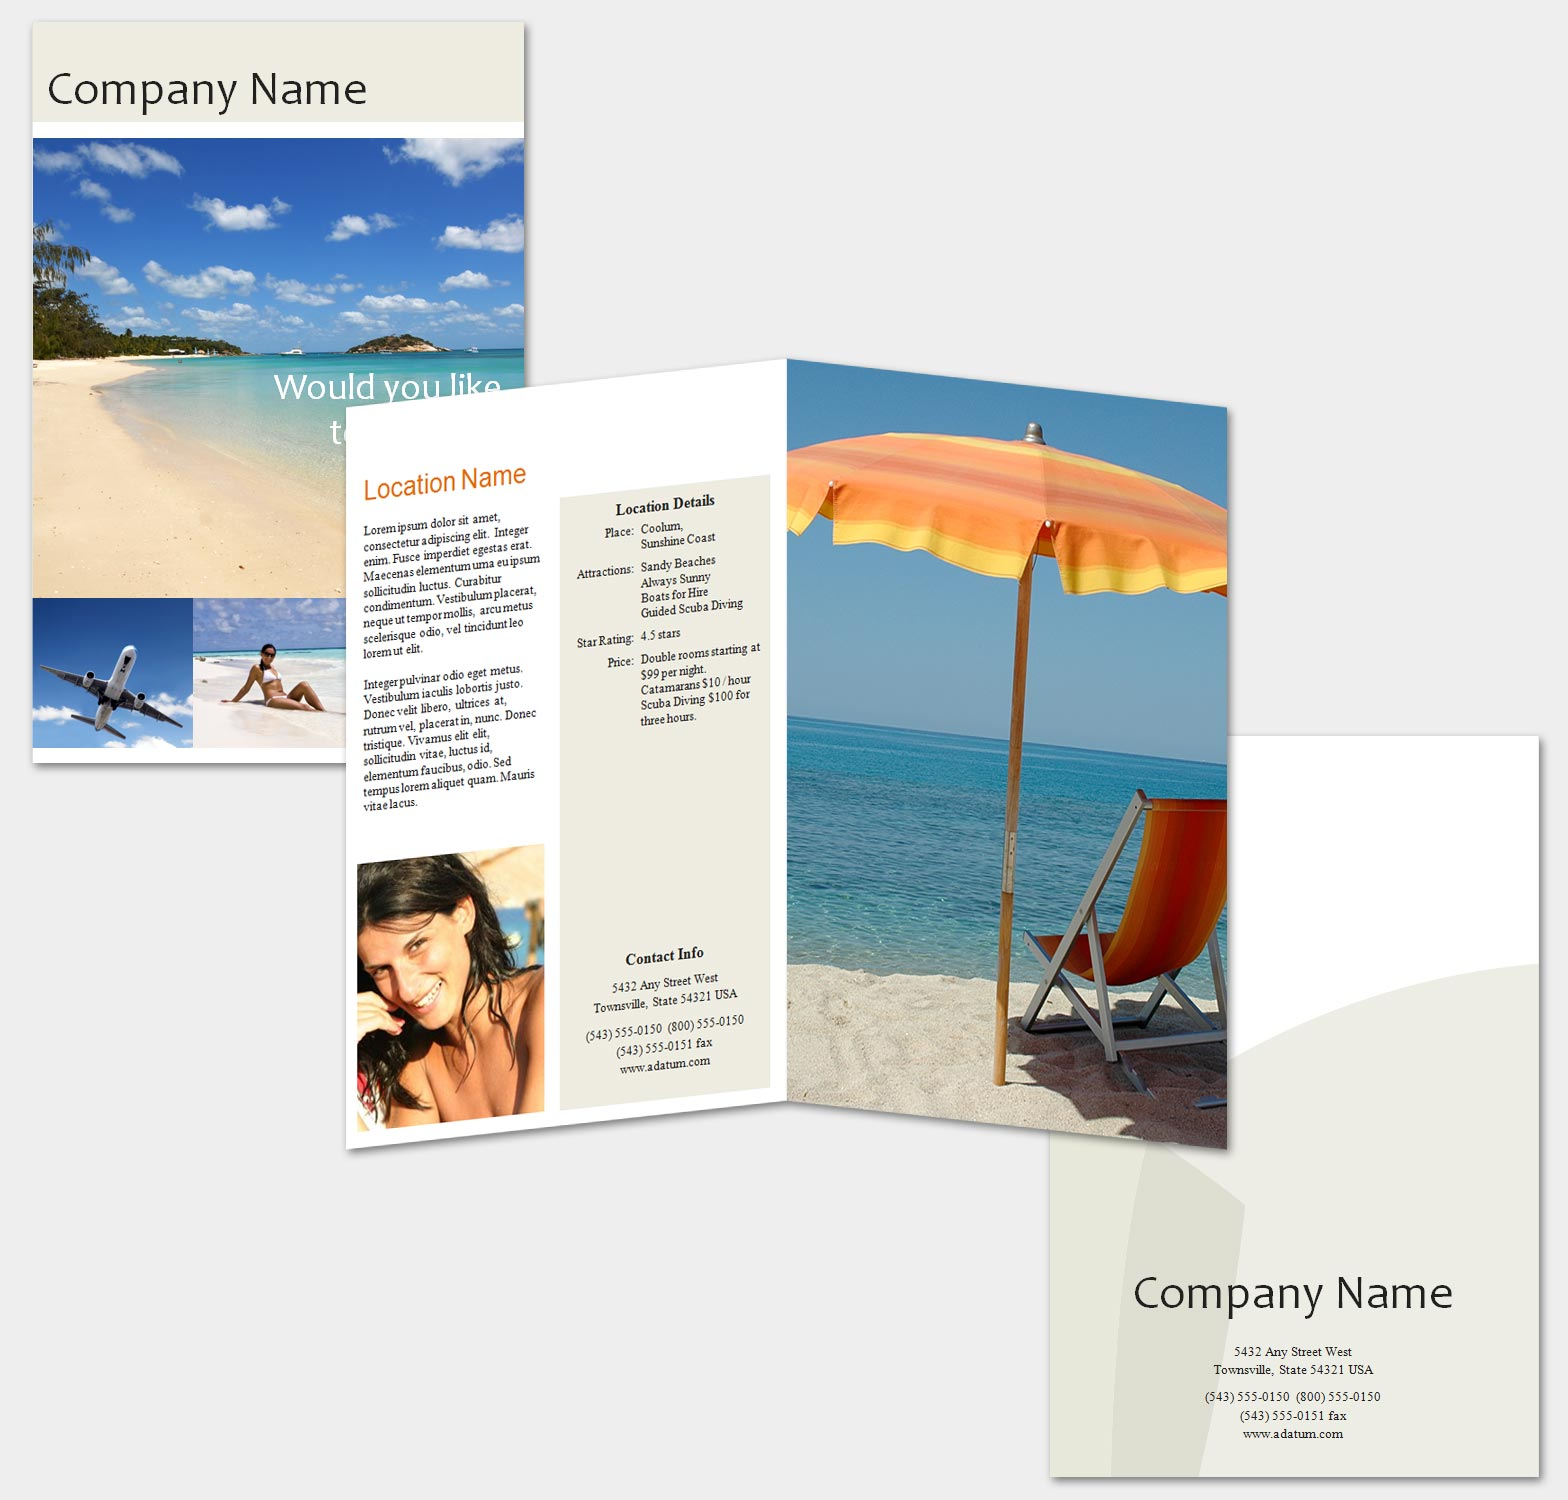 Free Brochure Templates For Word To Download two week calendar – Free Brochure Templates for Word to Download